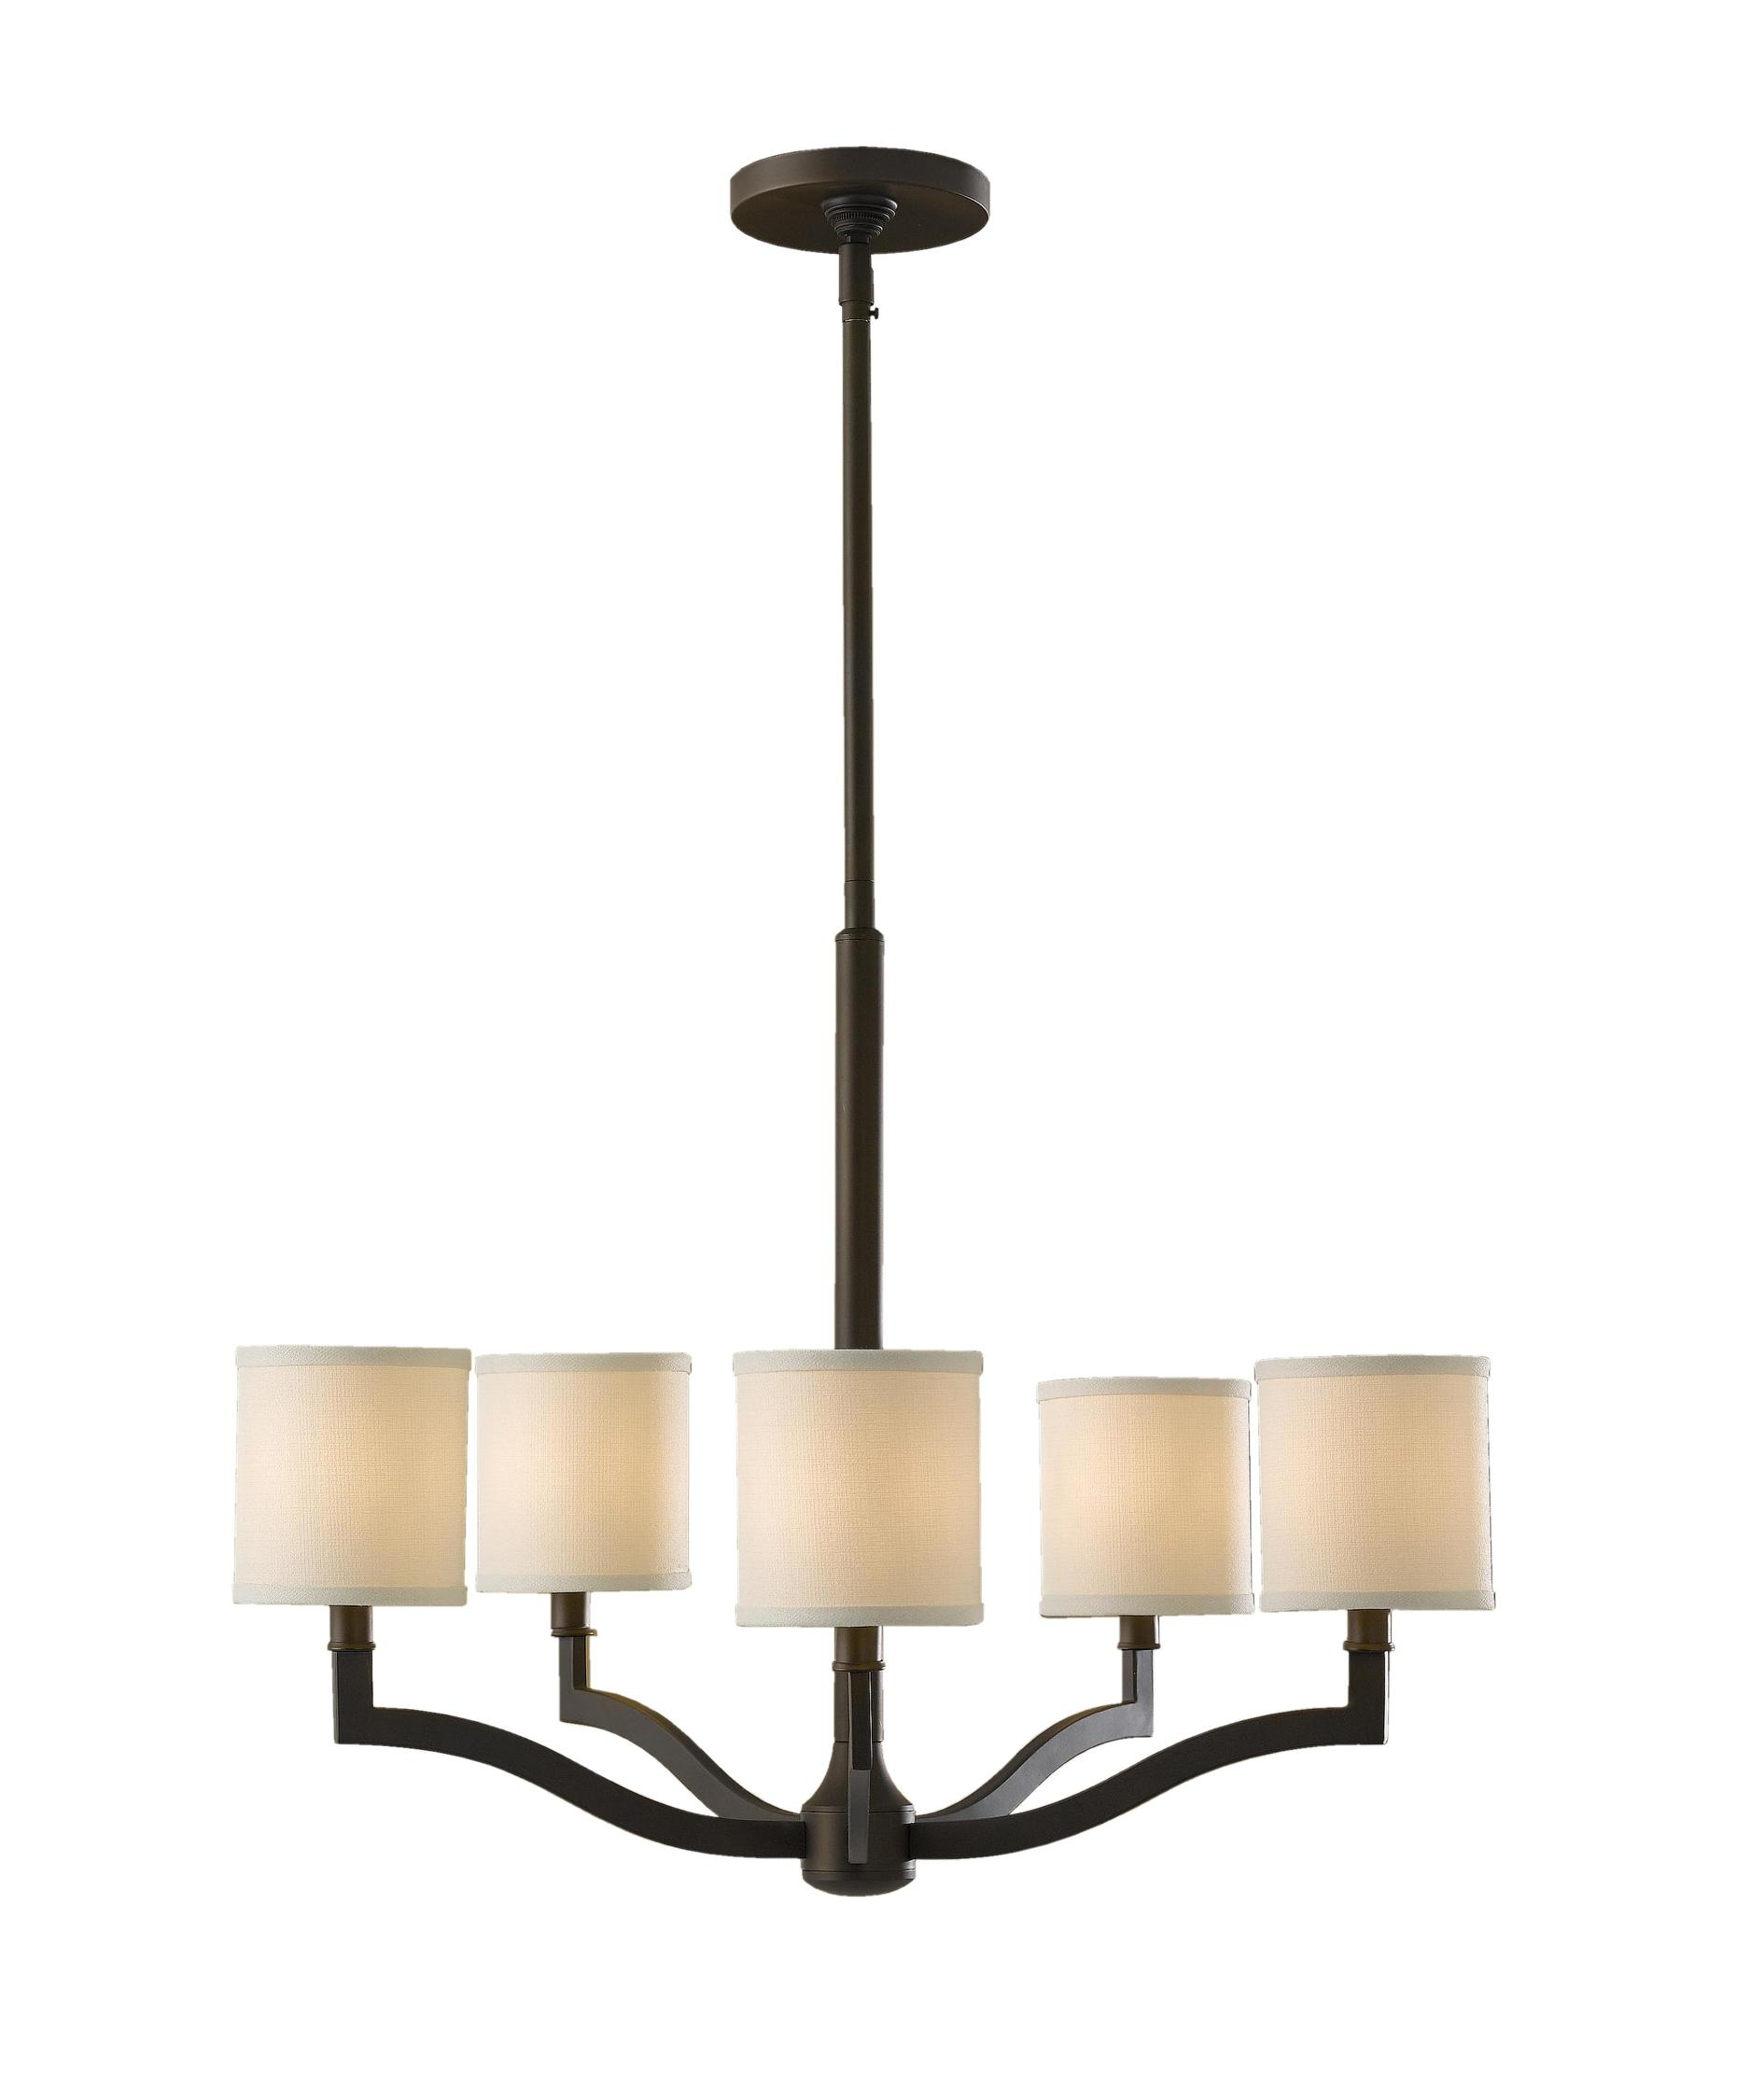 Murray Feiss F2519 5 Stelle 26 Inch Wide 5 Light Chandelier For Linen Chandeliers (Image 18 of 25)